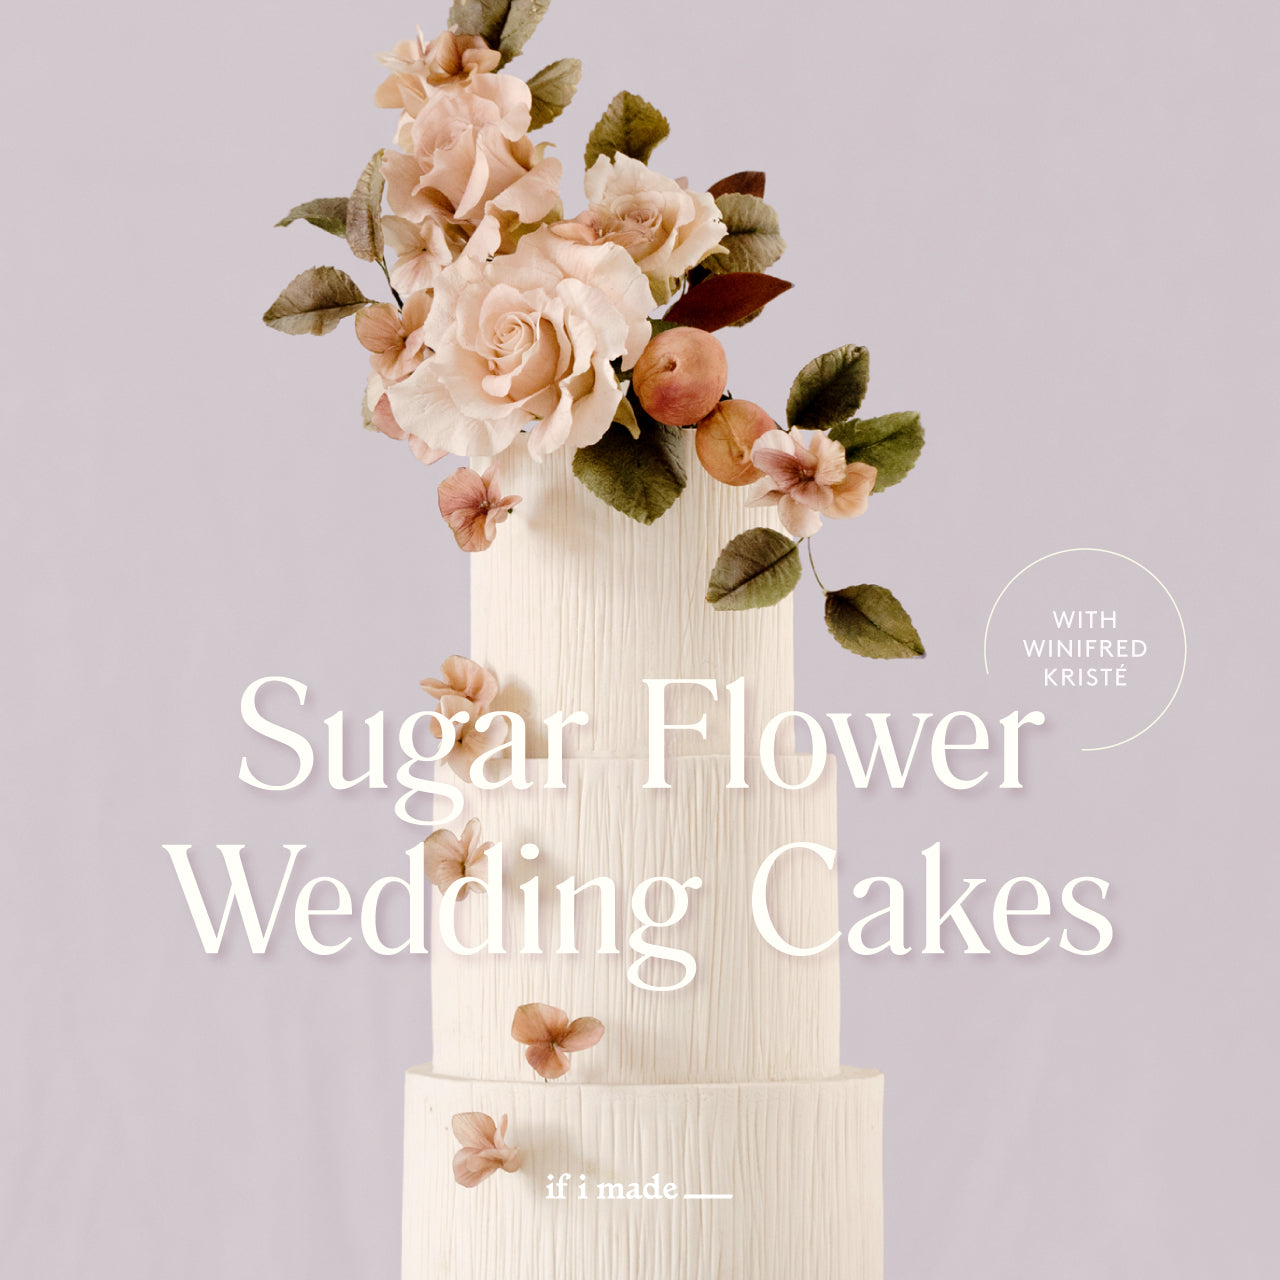 Sugar Flower Wedding Cakes with Winifred Kristé Cake (RPP) - 17 payments of $99